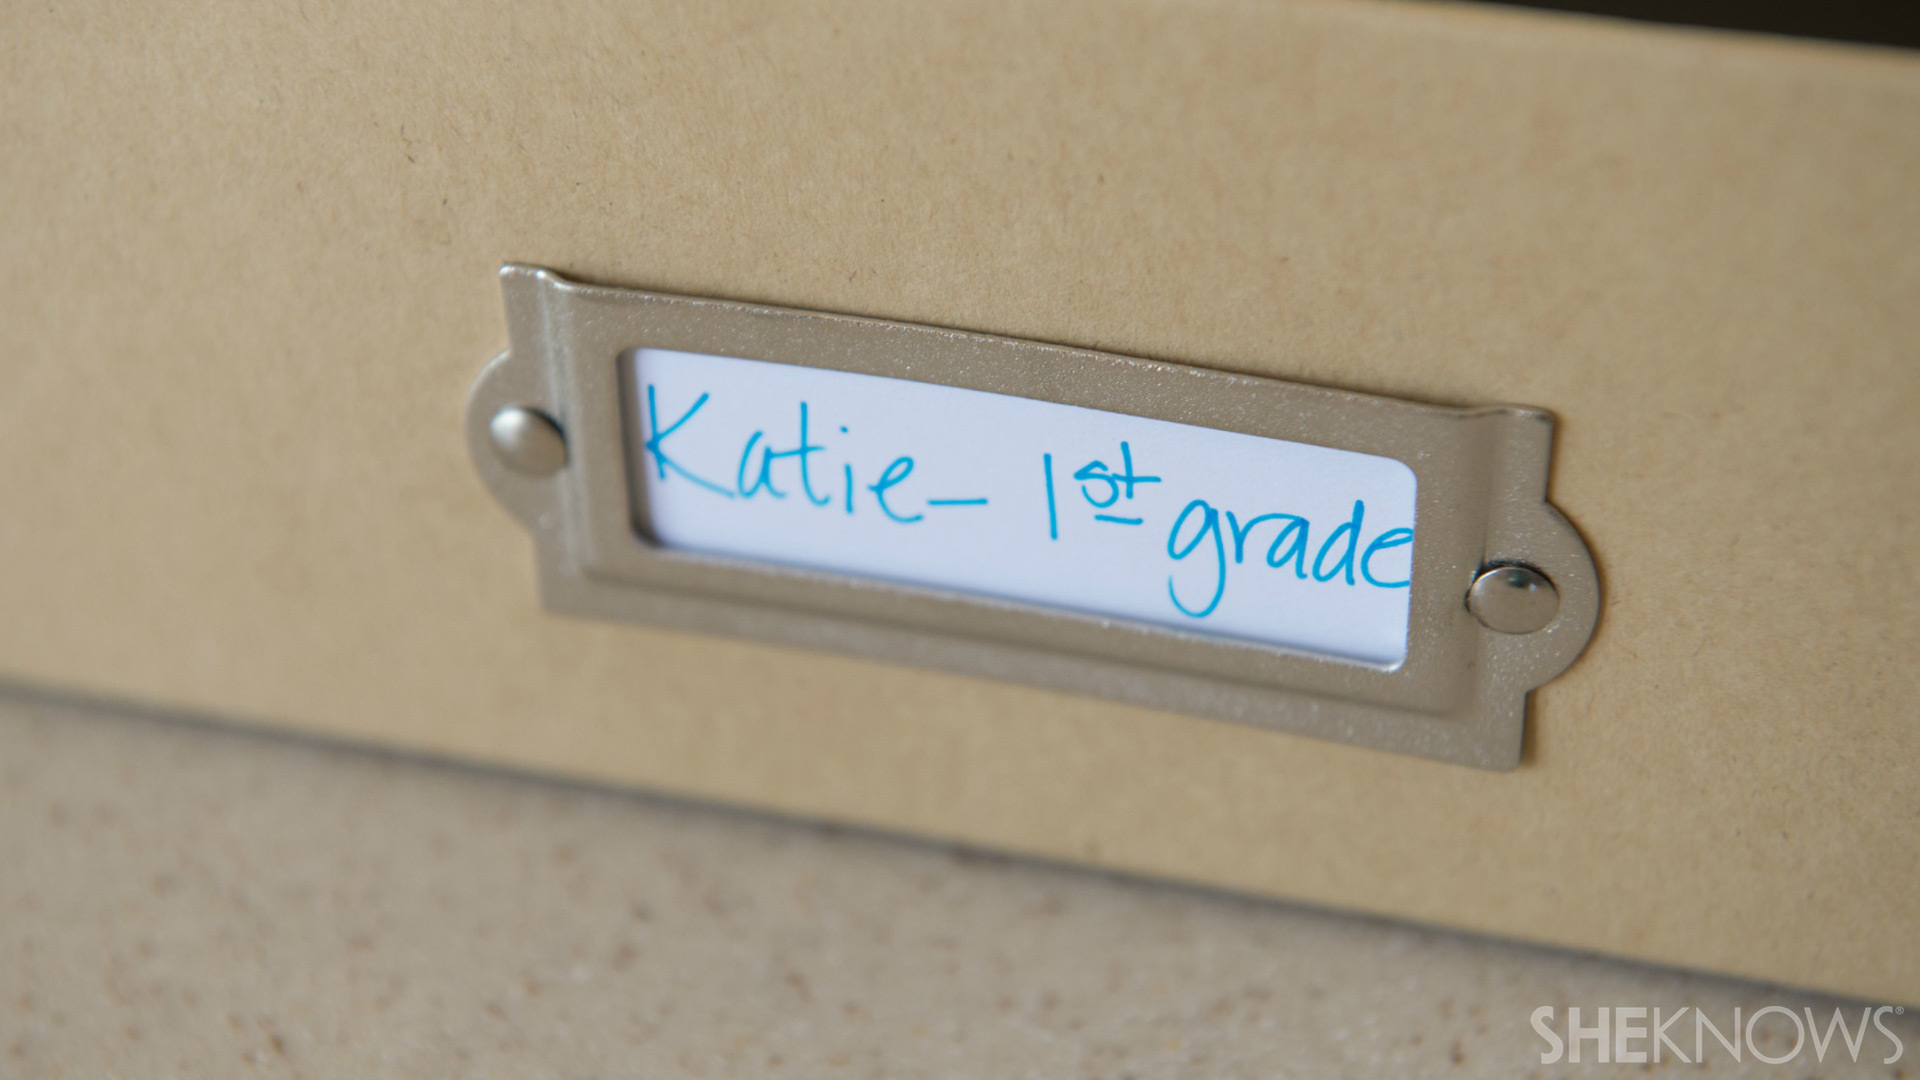 School project storage box | Sheknows.com - tagged with child's name